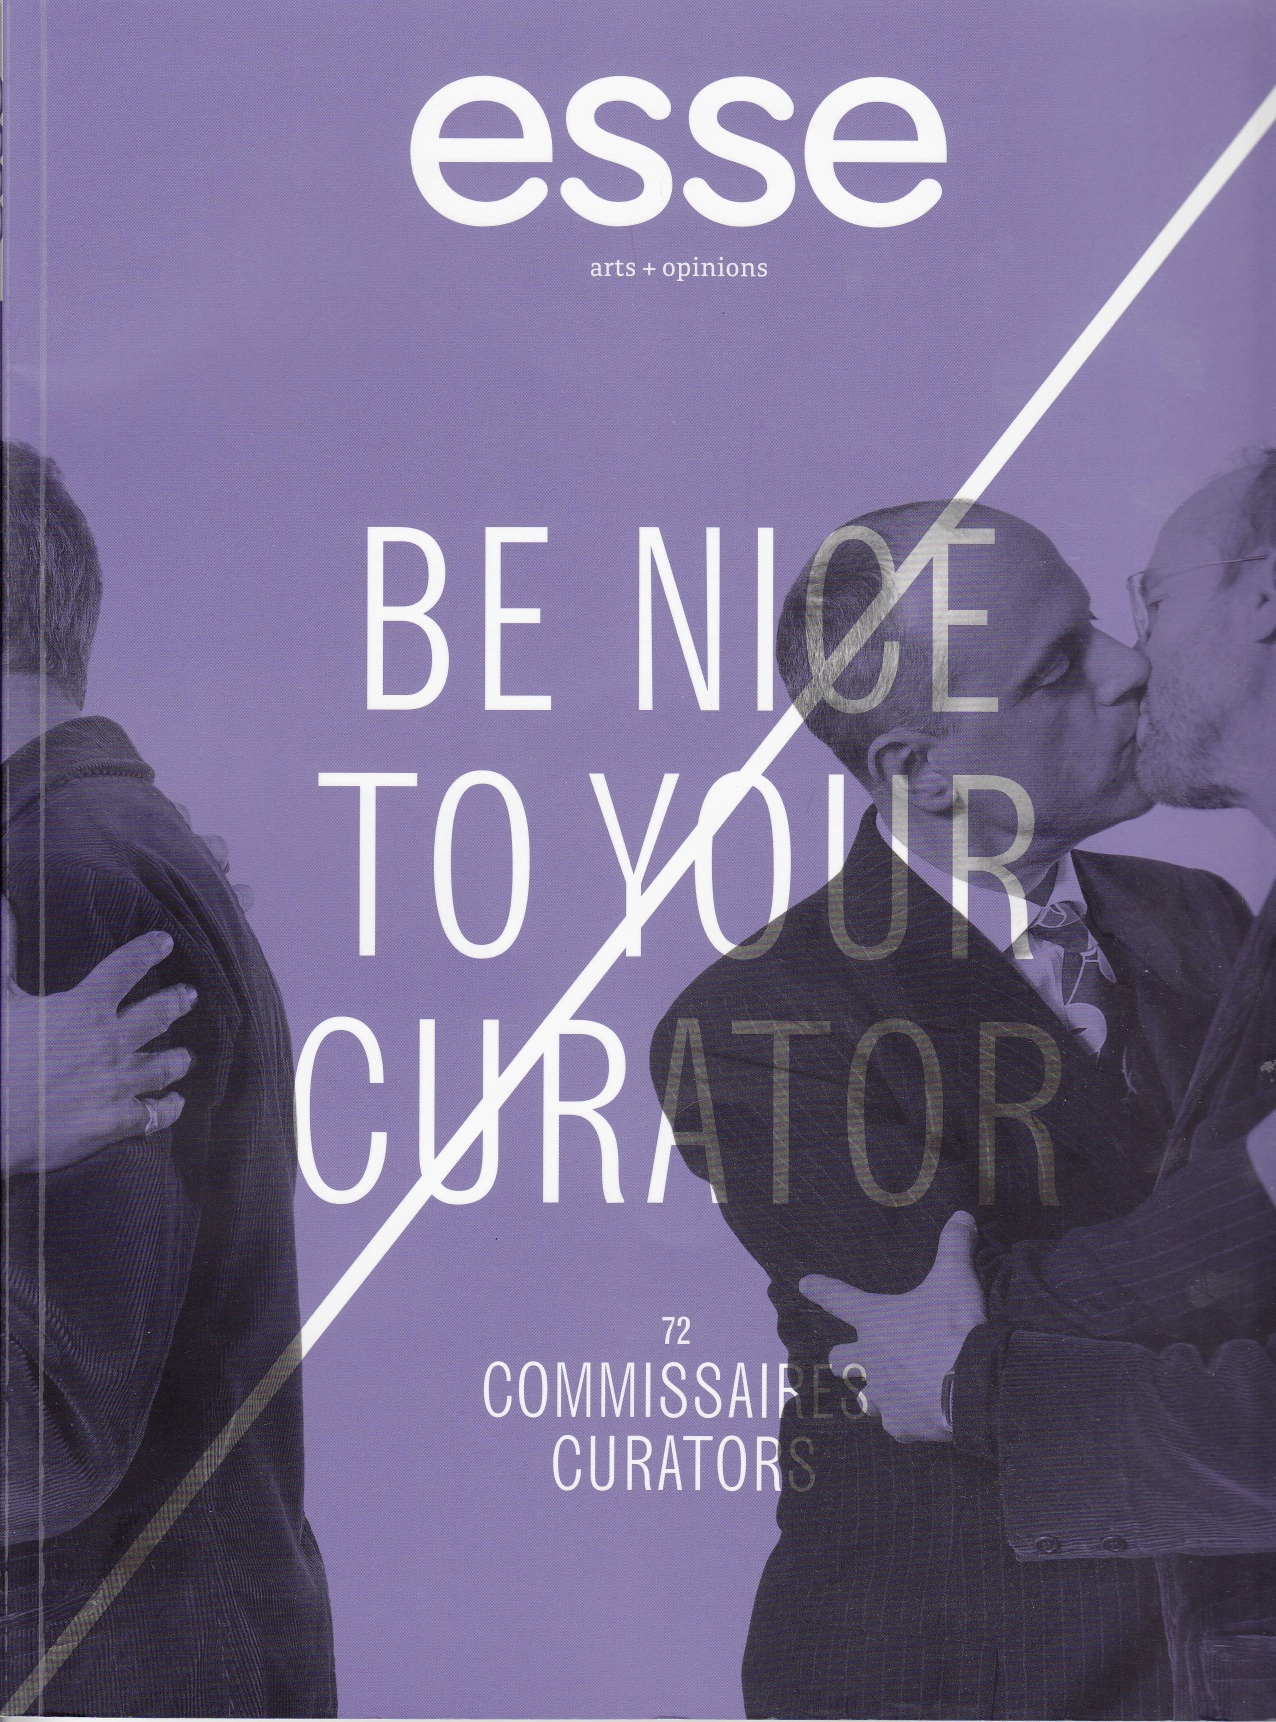 ARTICLE > Be nice with your curator : Valorisations institutionnelles et nouvelles pratiques curatoriales | esse #72